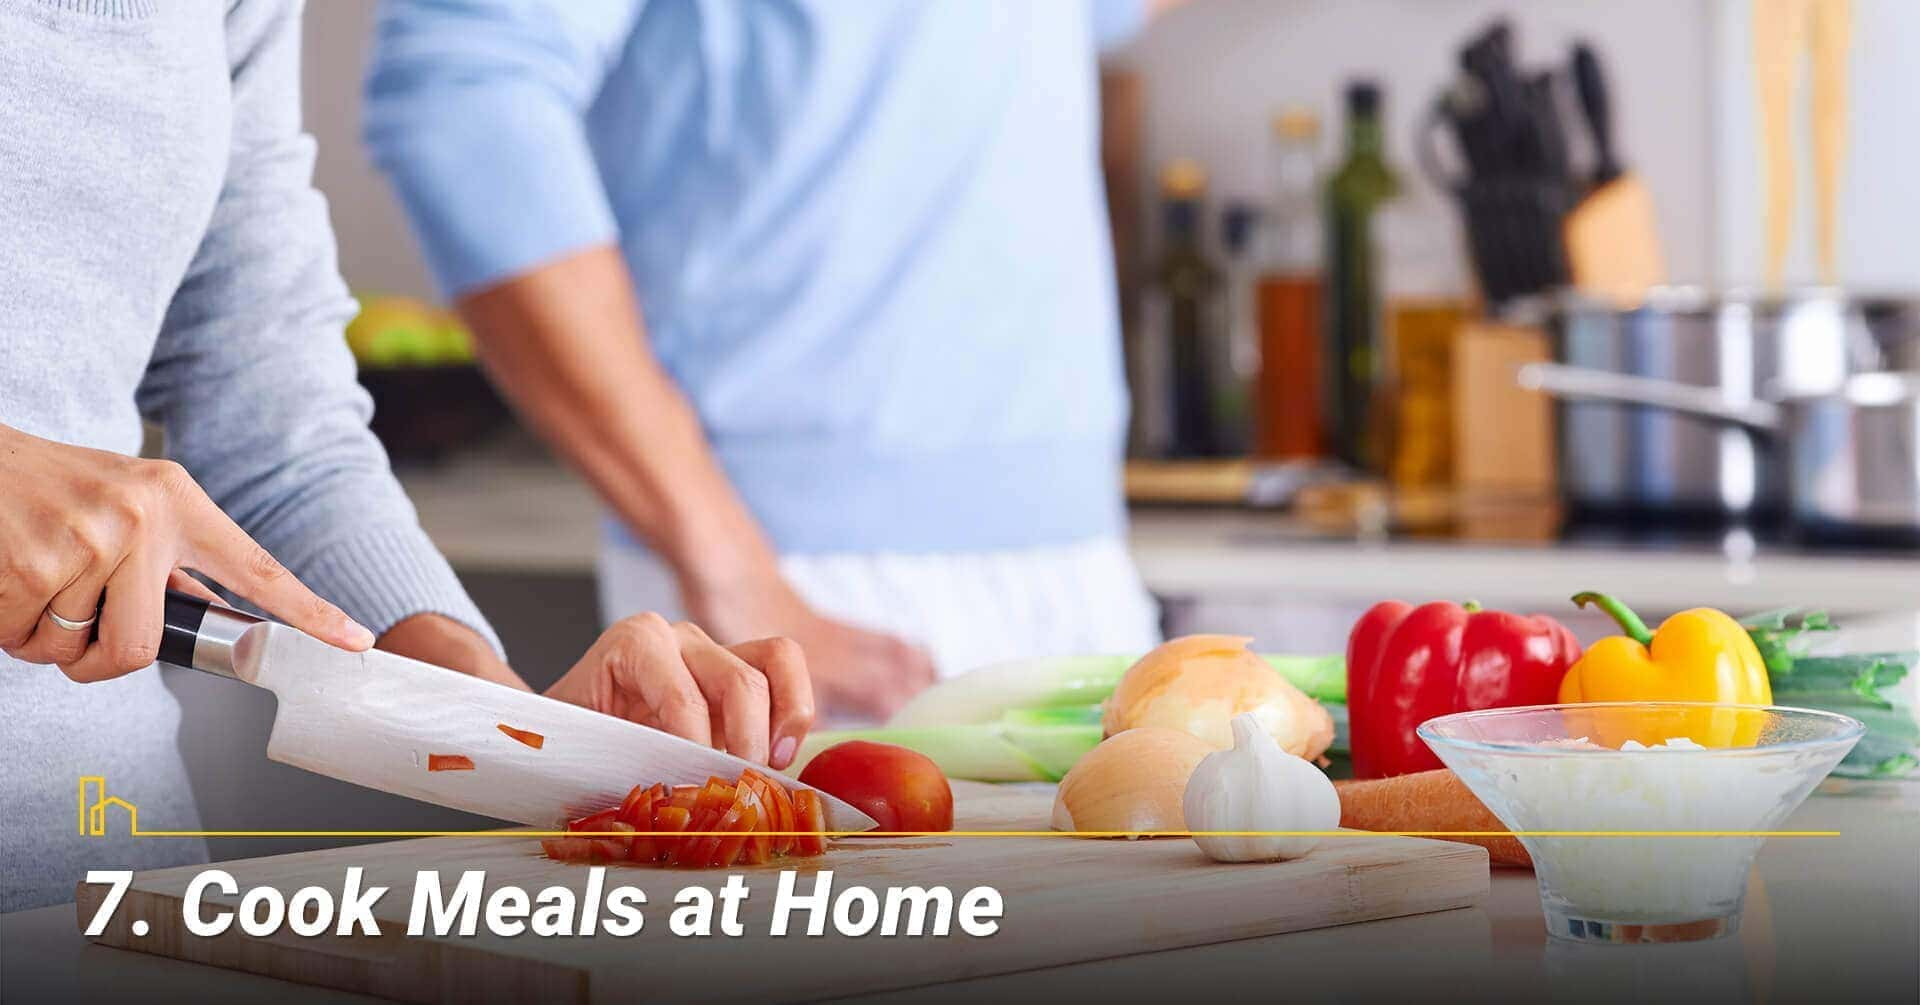 Cook Meals at Home